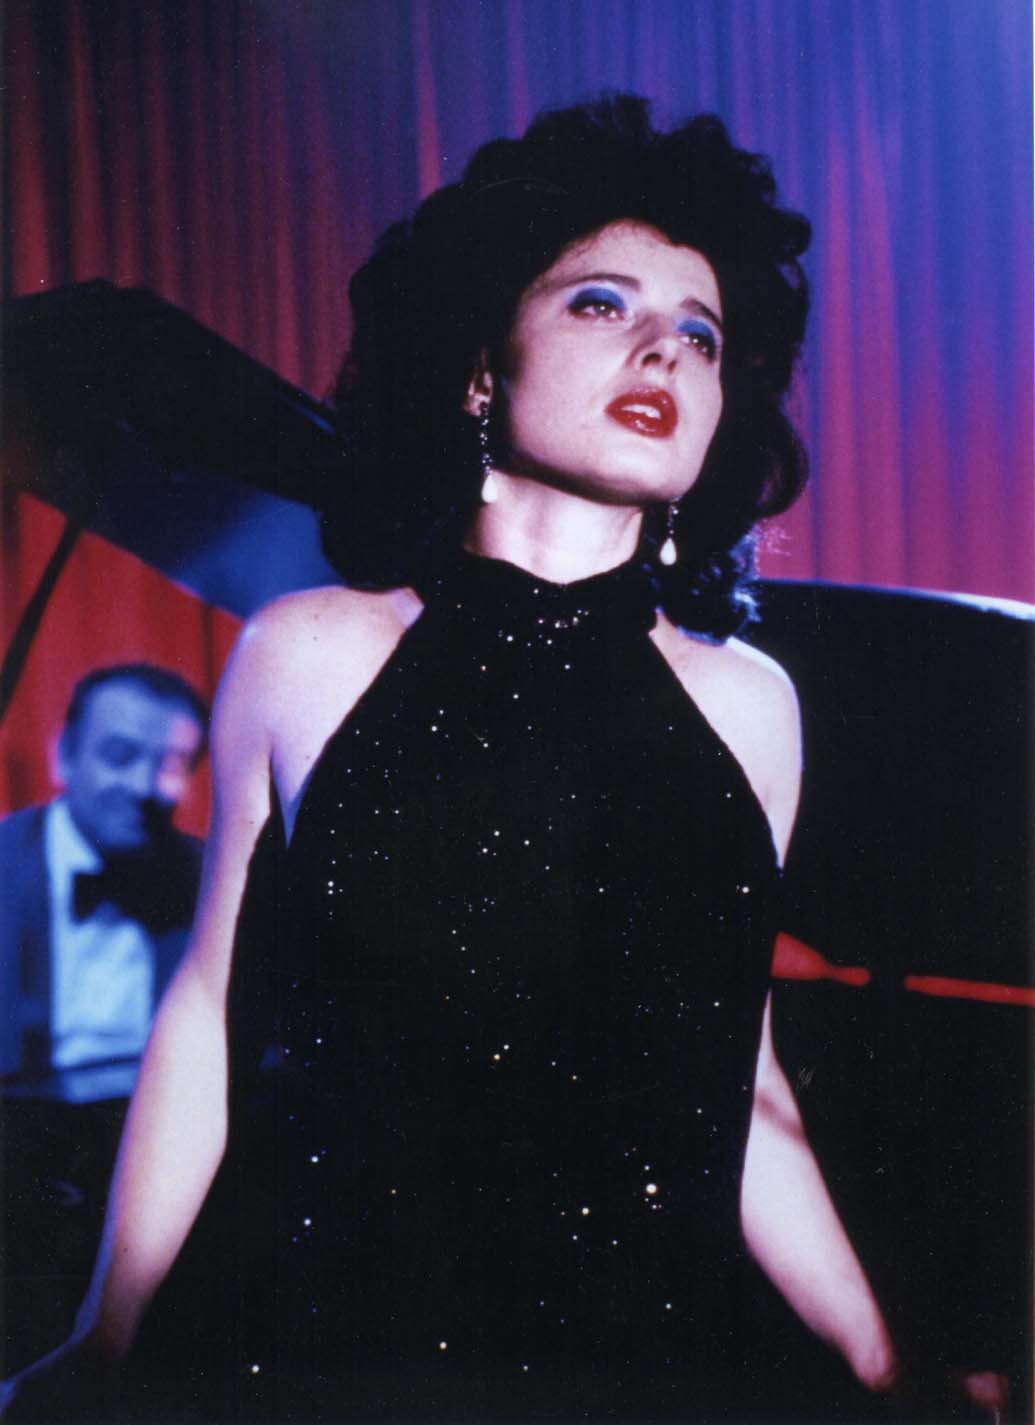 She wore blue velvet movie